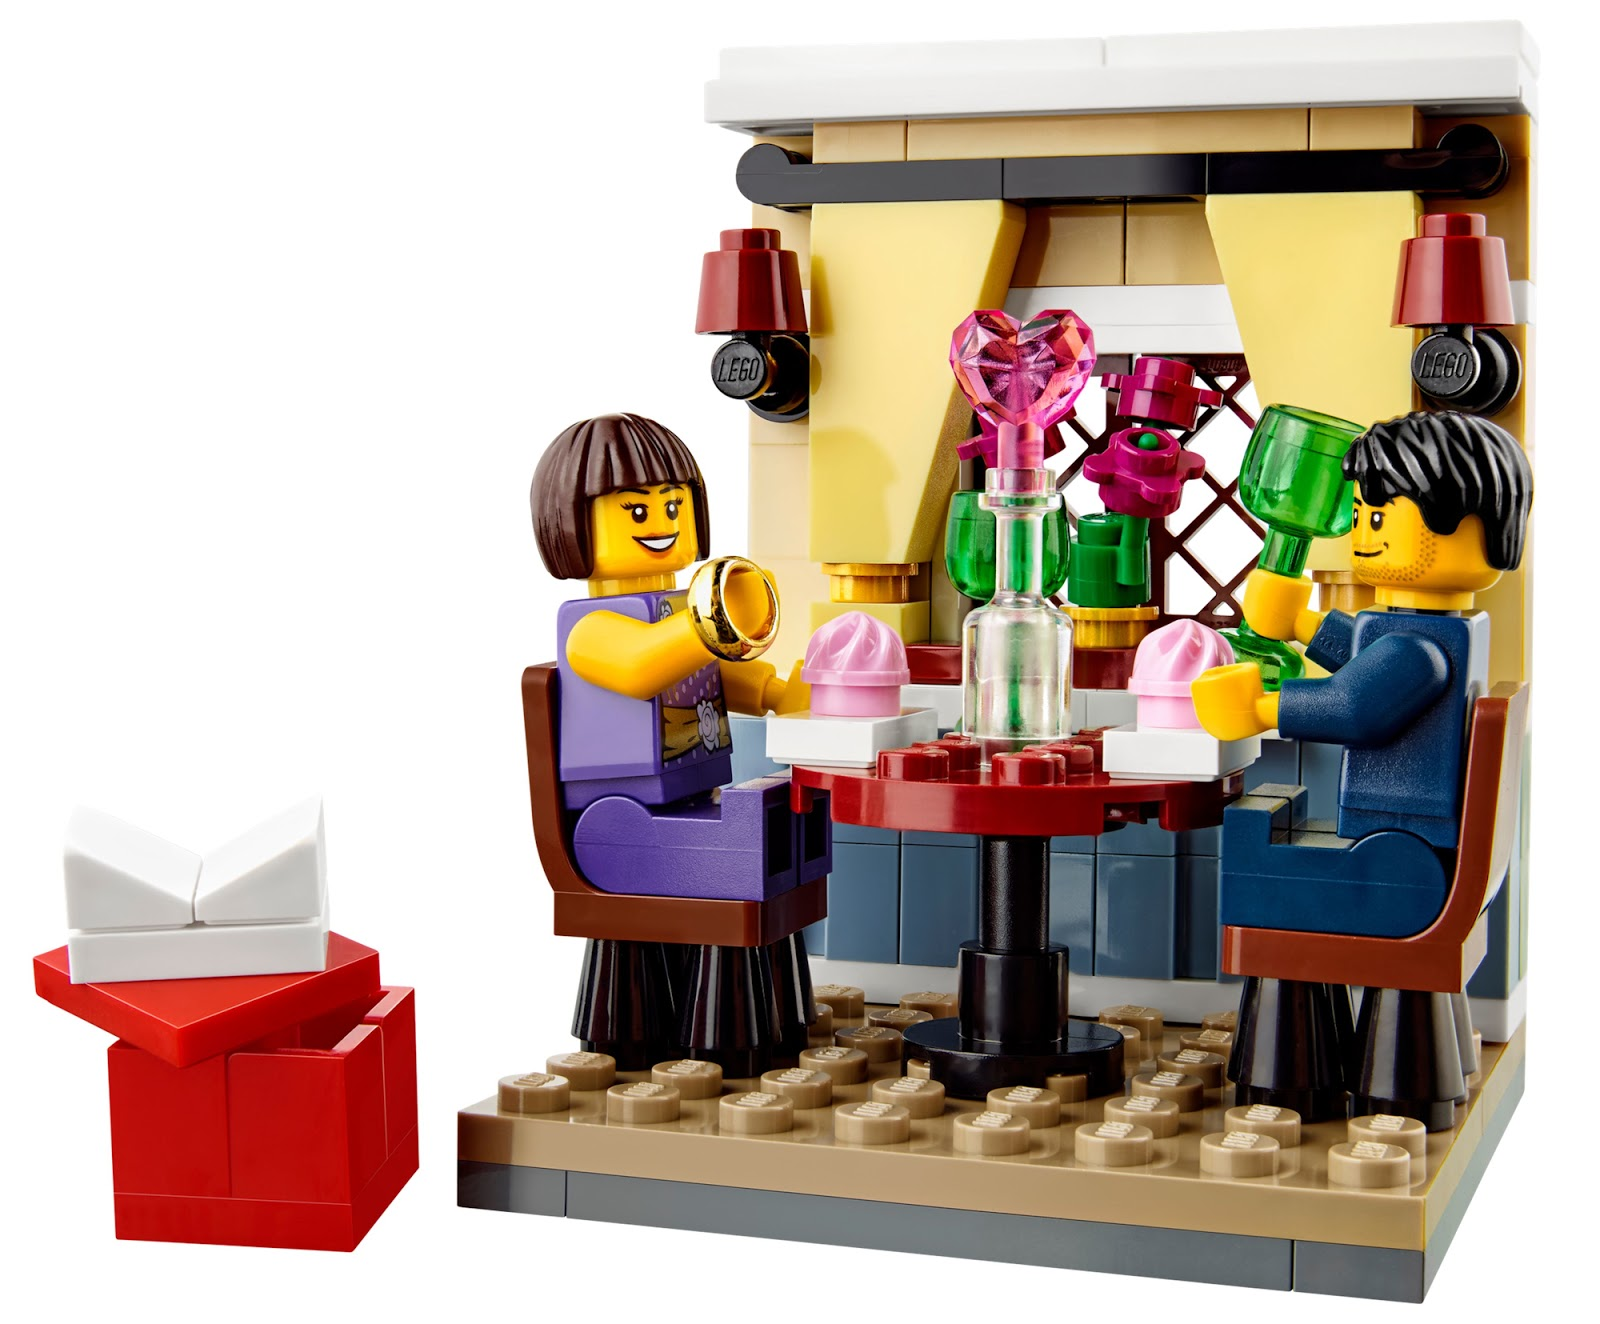 Toys R Us Lego Table And Chairs Indoor Swing Chair Uk The Brickverse In Mood For Love This Valentine 39s Day